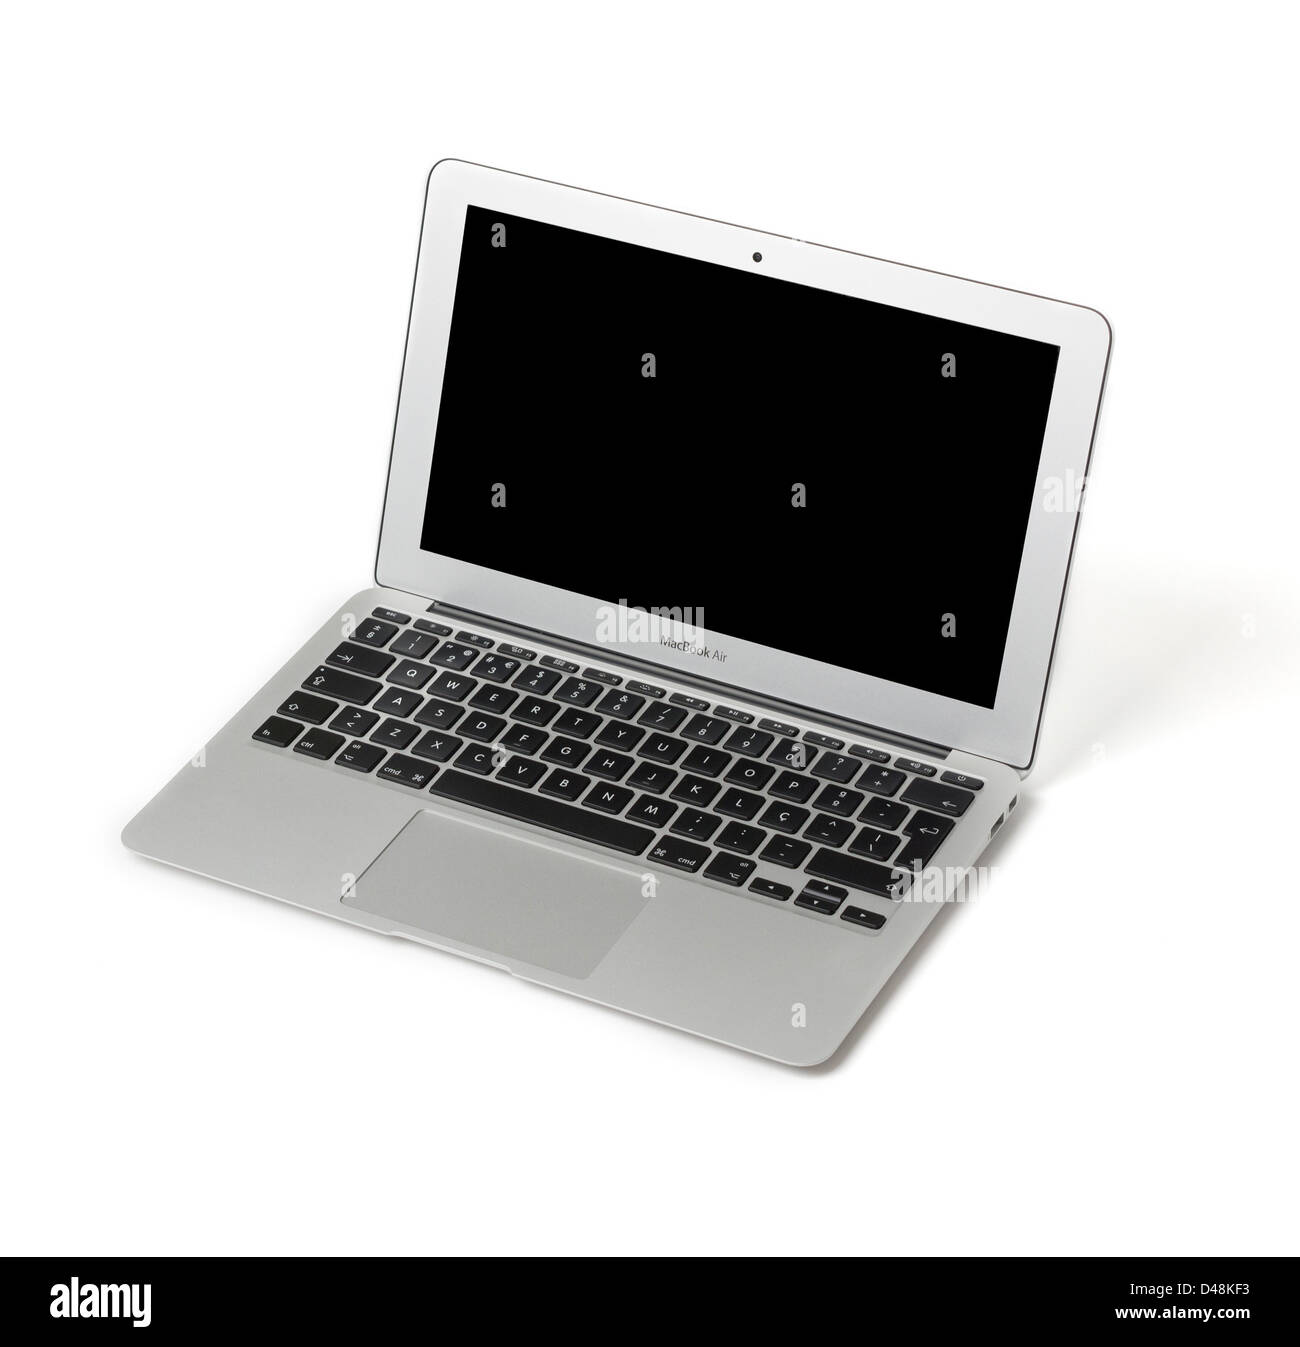 Apple MacBook Air 11' cut out isolated on white background - Stock Image